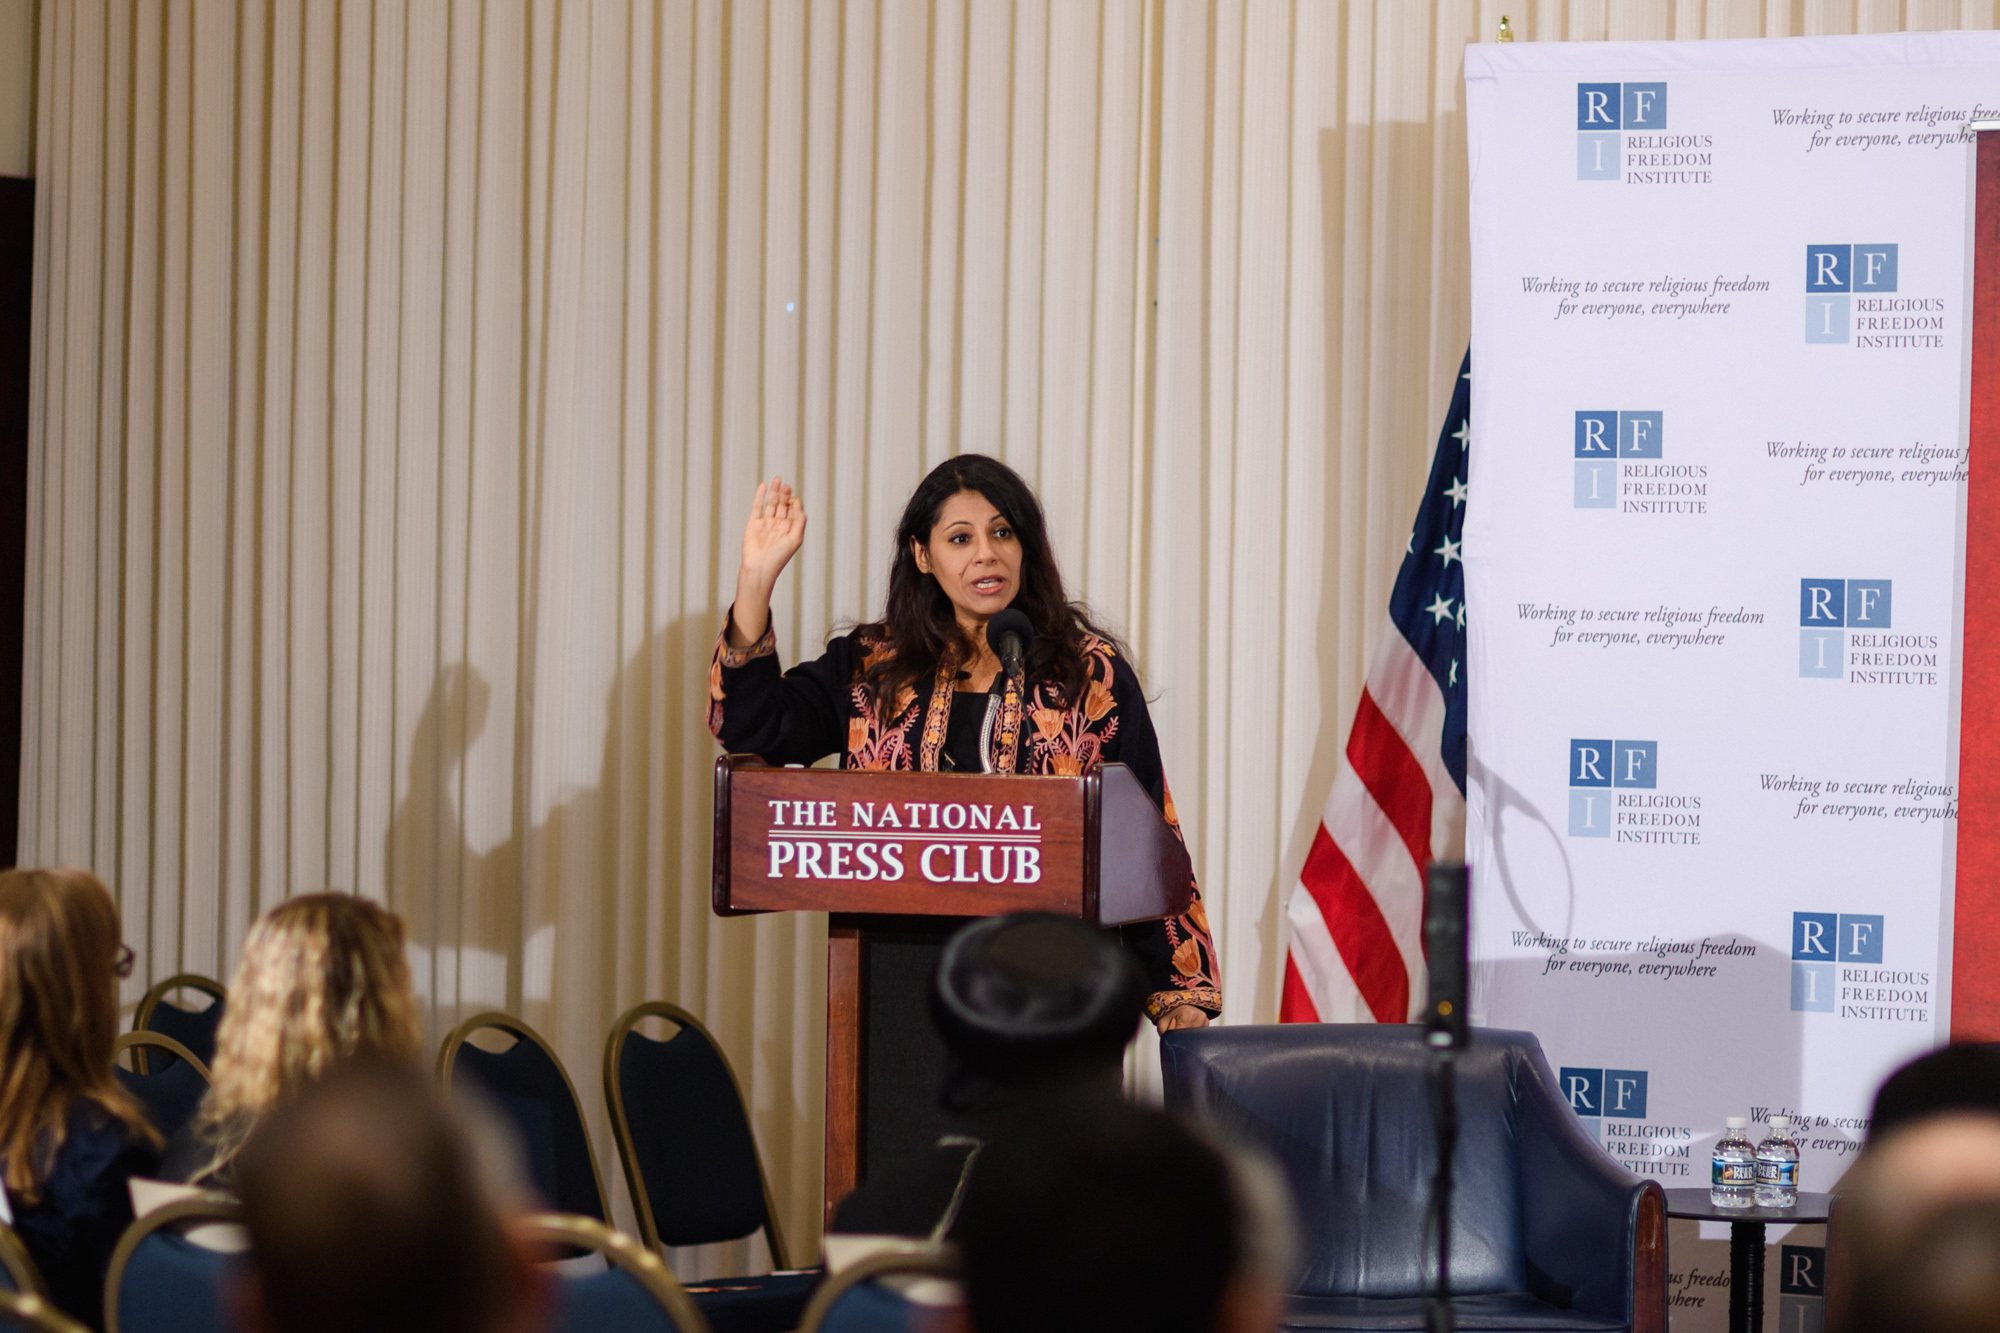 089 - February 12th 2019 Religious Freedom Institute at National Press Club - Photo Nathan Mitchell.jpg